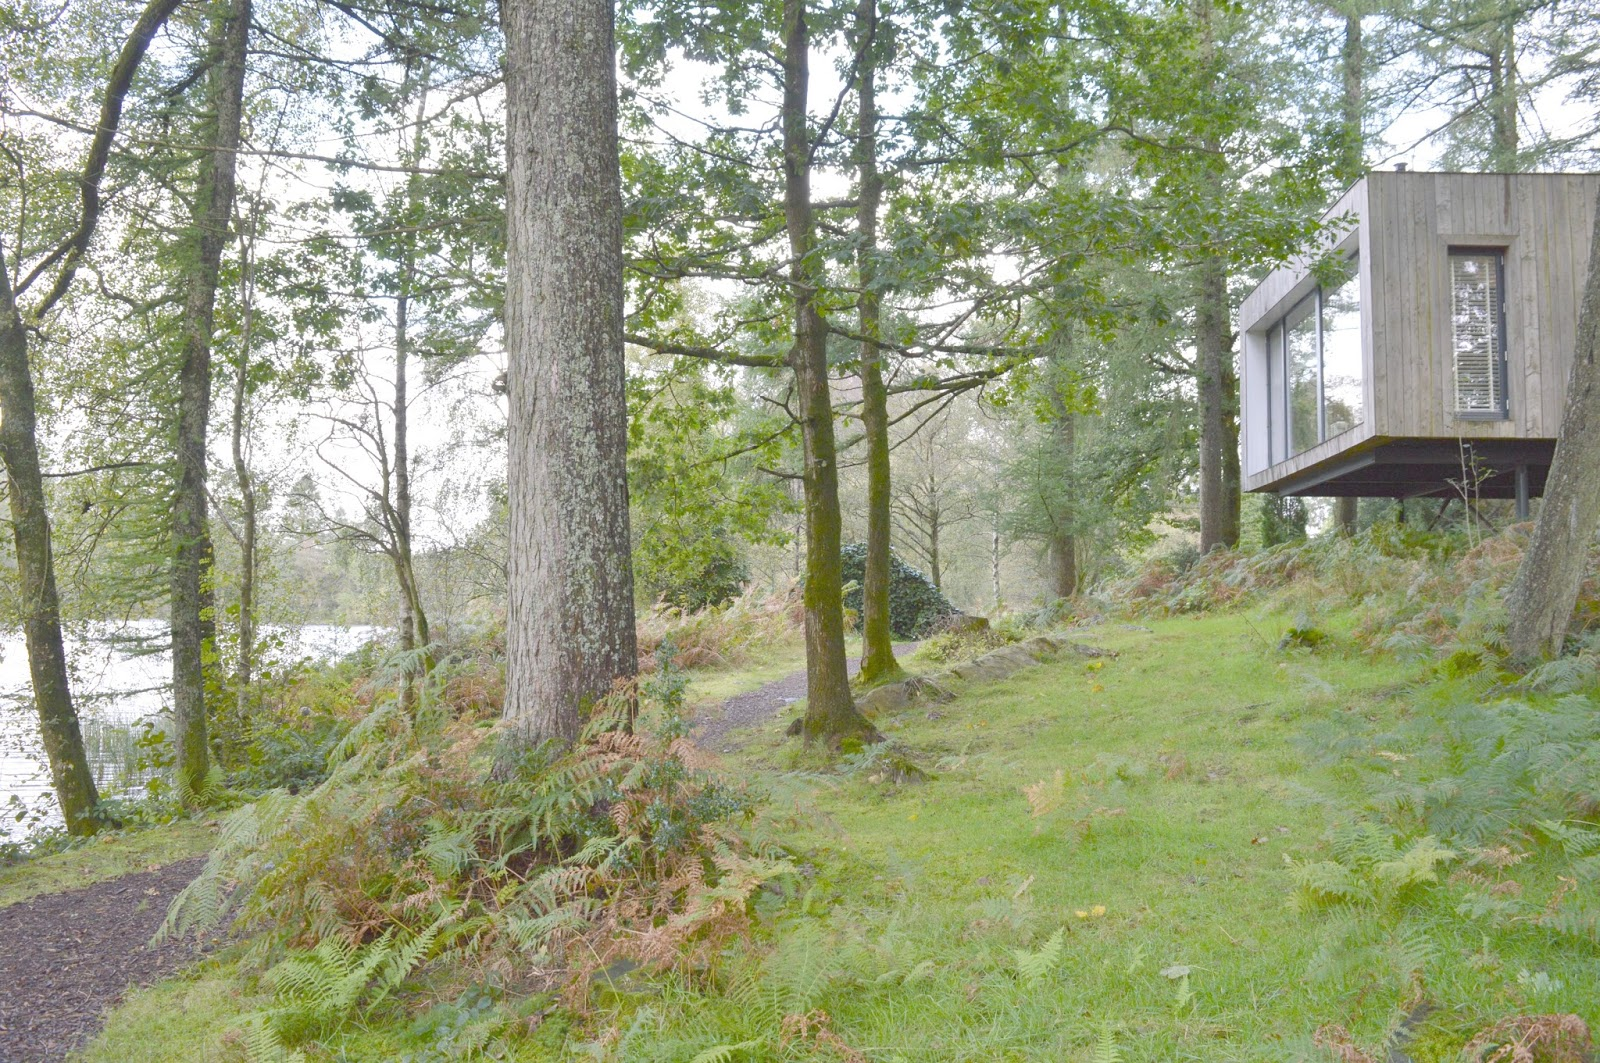 The Jetty Spa Trail at the Gilpin Lakehouse, Windermere